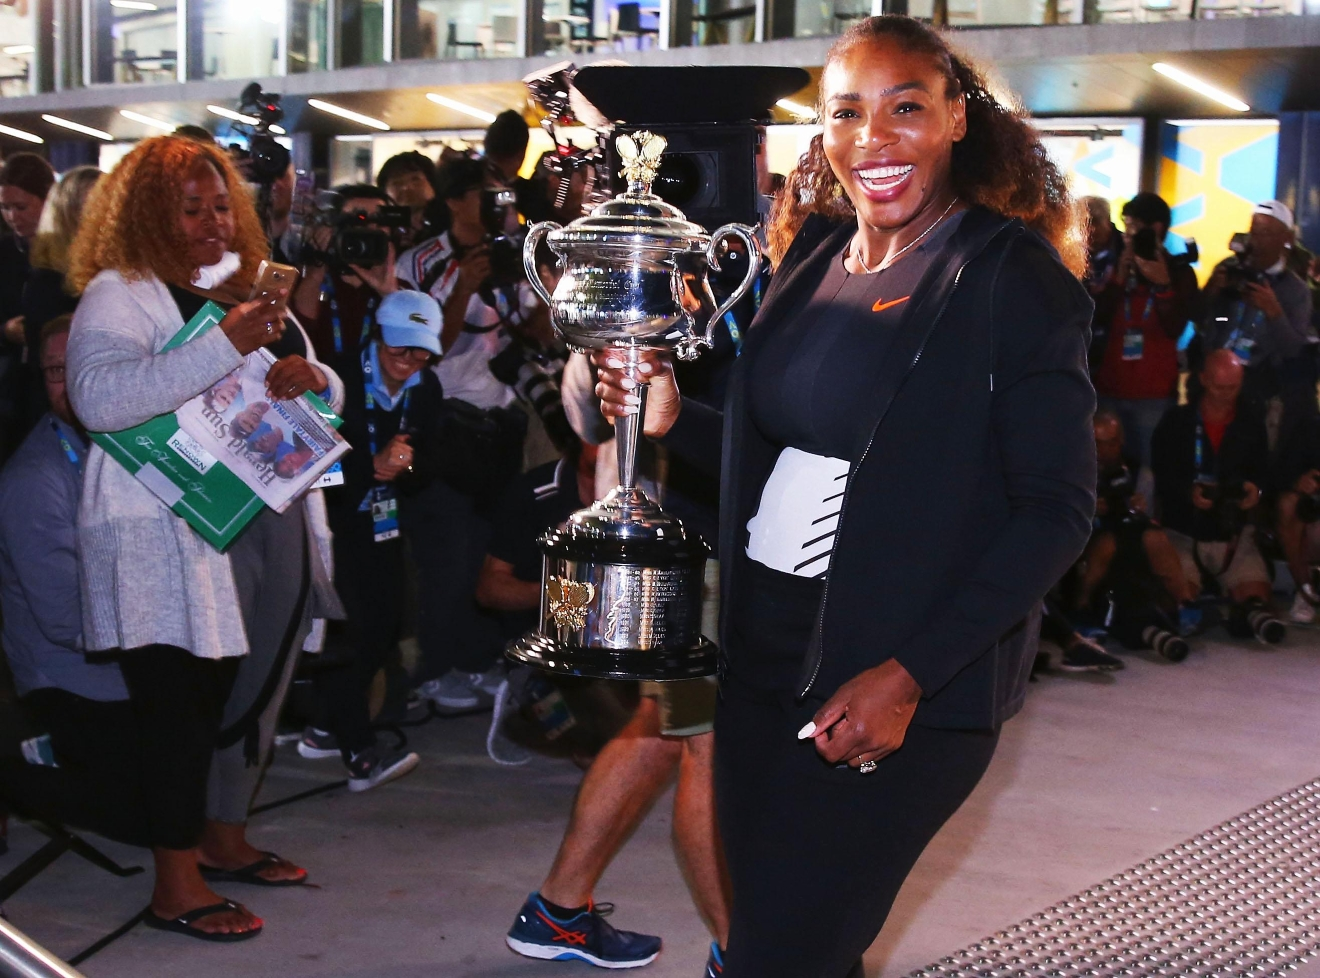 MELBOURNE, AUSTRALIA - JANUARY 28:  Serena Williams of the United States poses with the Daphne Akhurst Memorial Cup after winning the 2017 Women's Singles Australian Open Championship at Melbourne Park on January 28, 2017 in Melbourne, Australia.  (Photo by Michael Dodge/Getty Images)